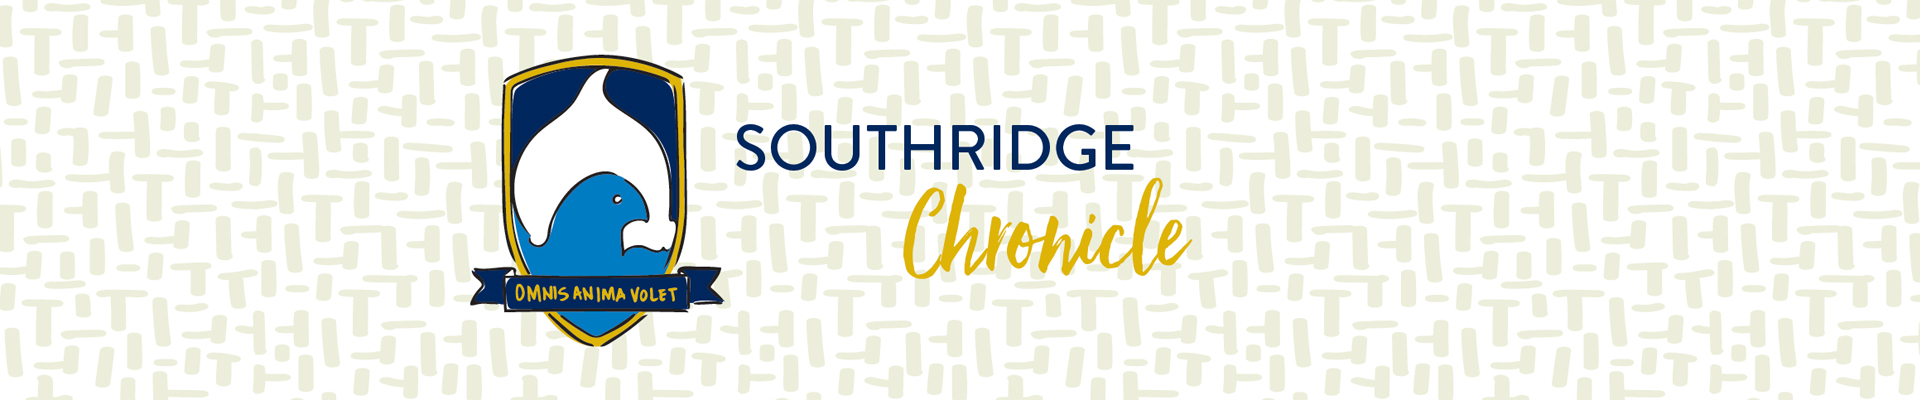 Southridge Chronicle